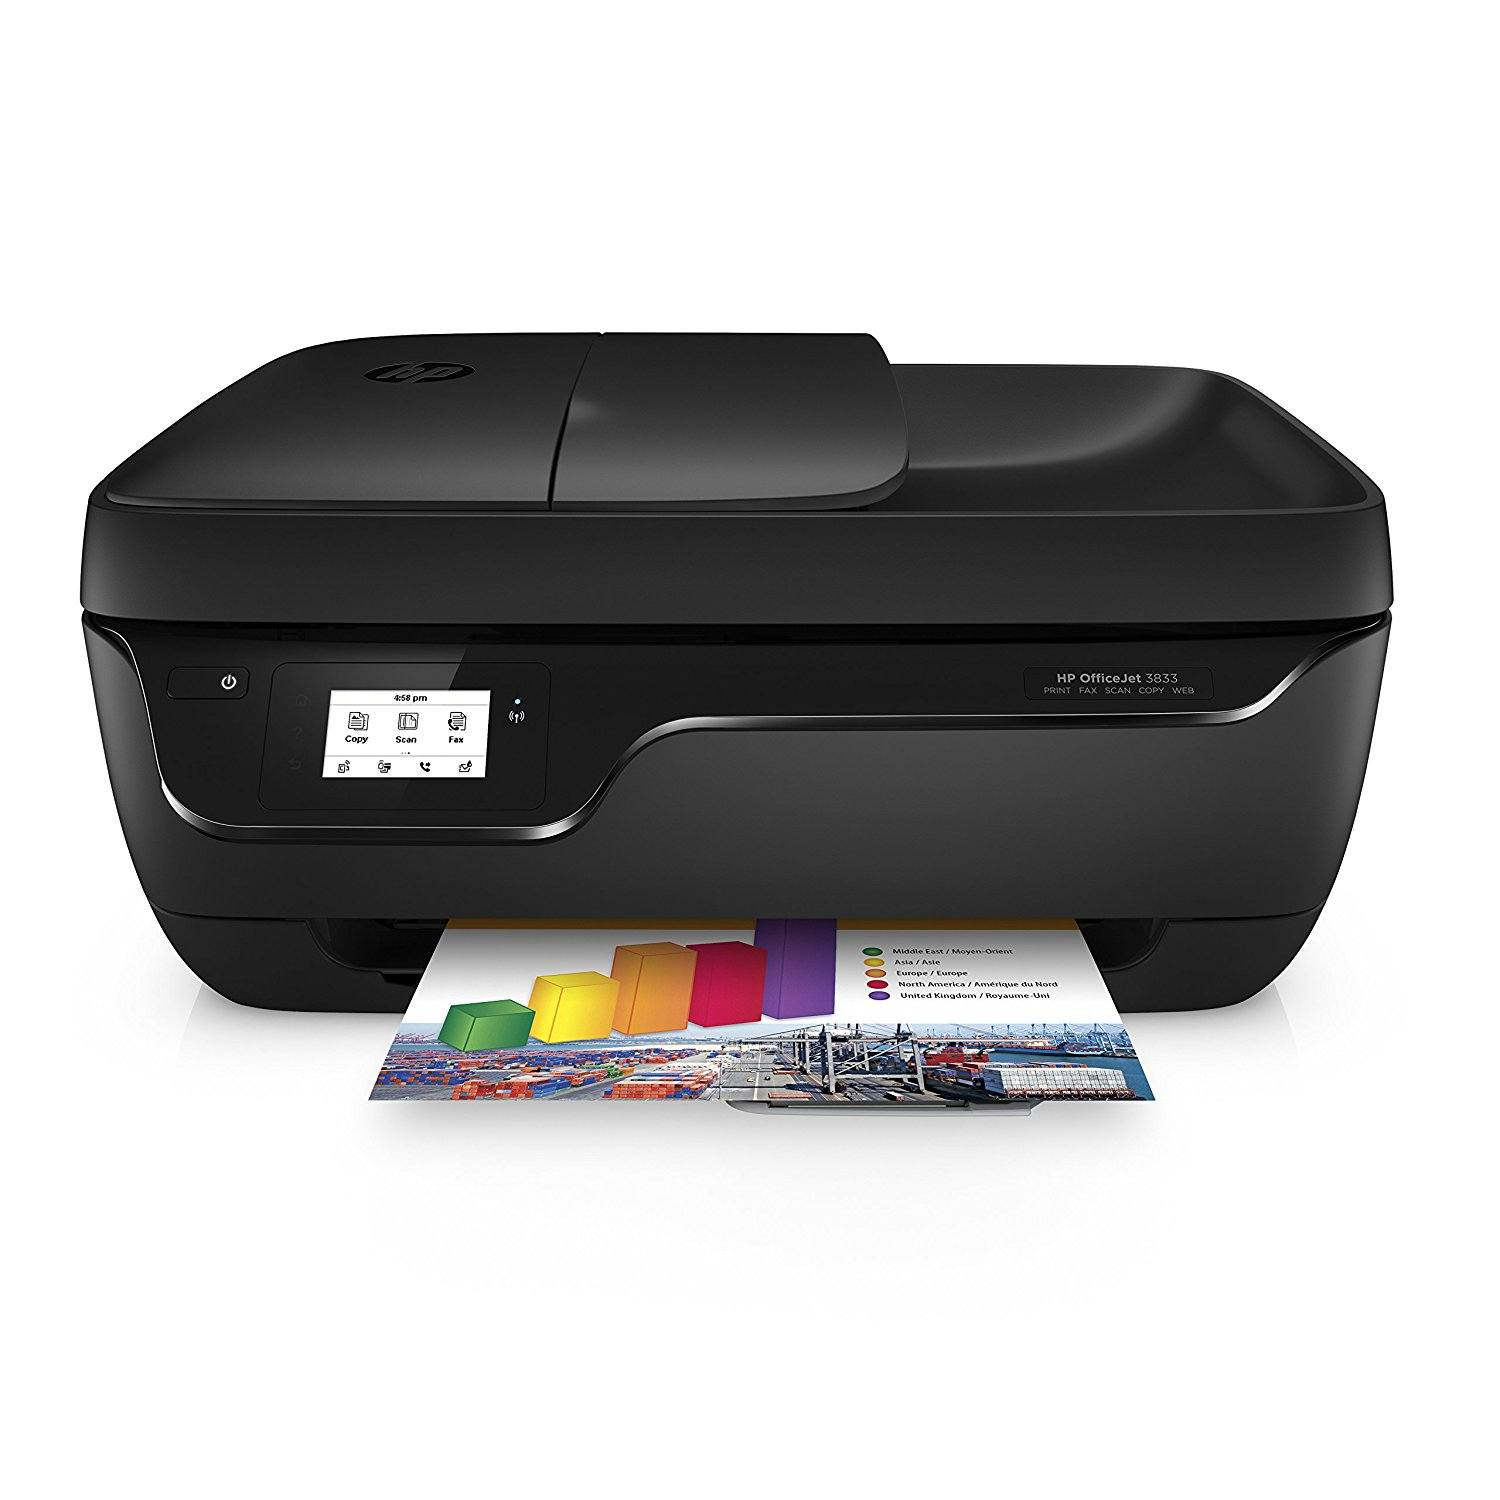 HP OfficeJet 3833 Multifunktionsdrucker